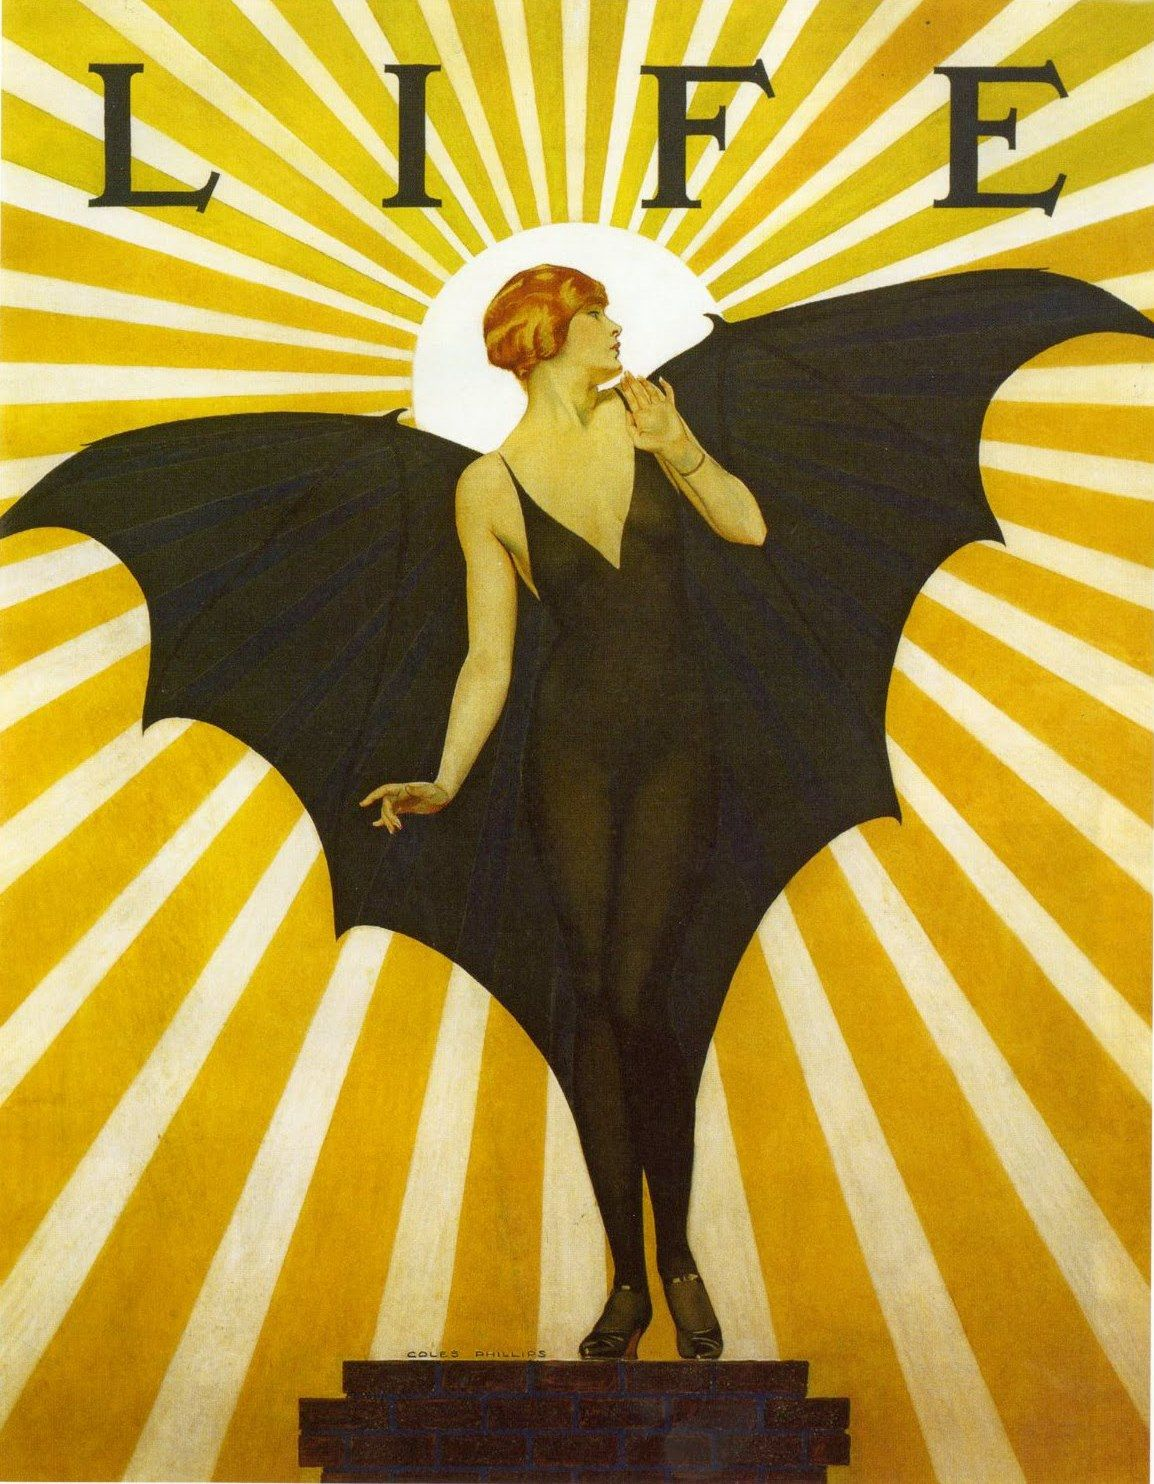 Clarence Coles Phillips - Life, (1927)